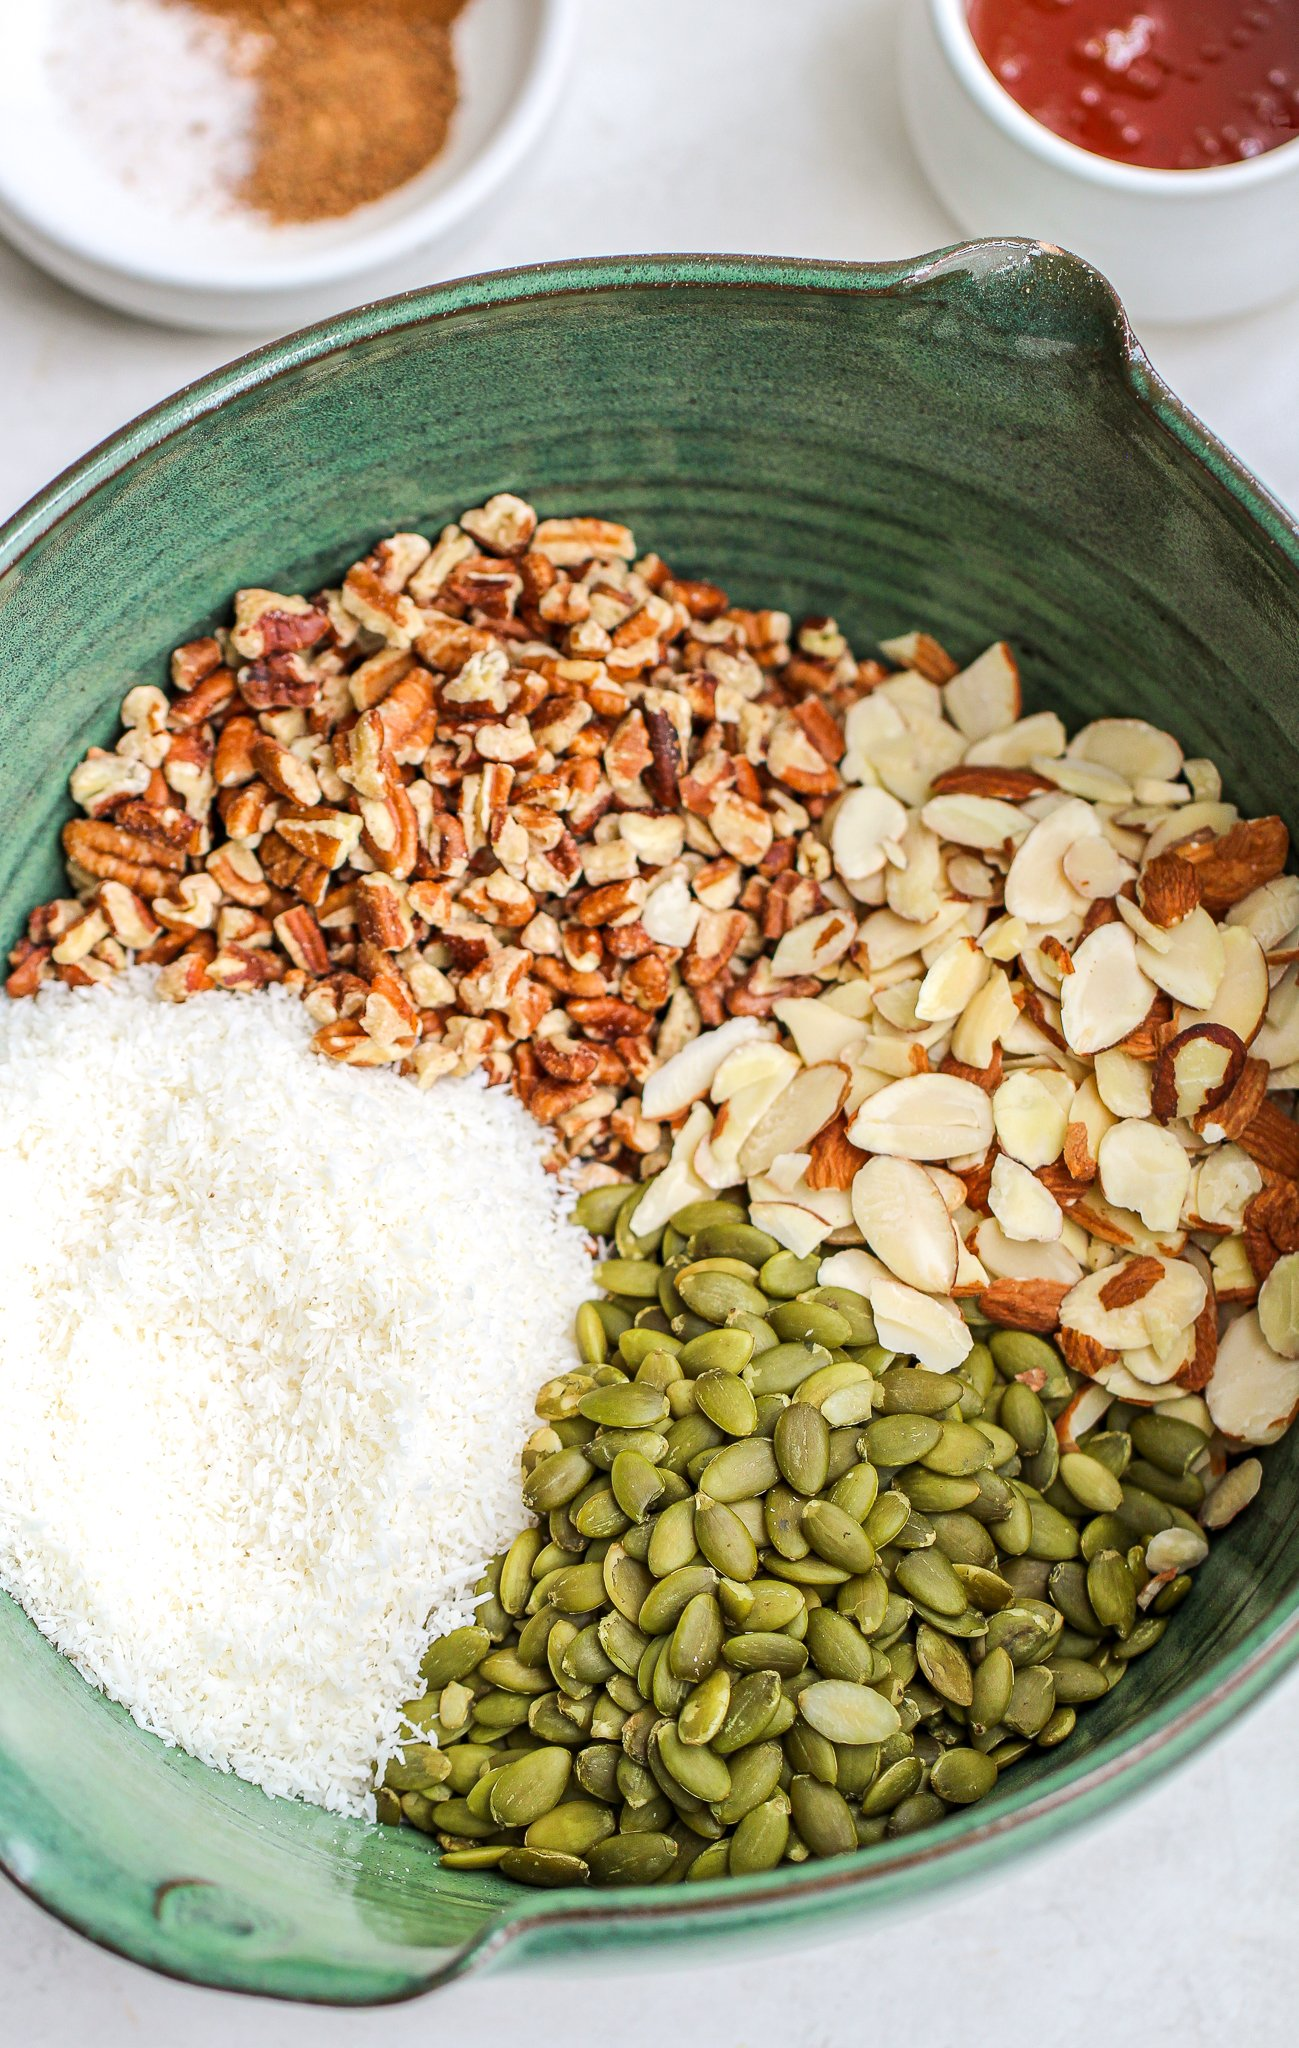 mix of sliced almonds, pecans, shredded coconut, and pumpkin seeds in a large green ceramic mixing bowl